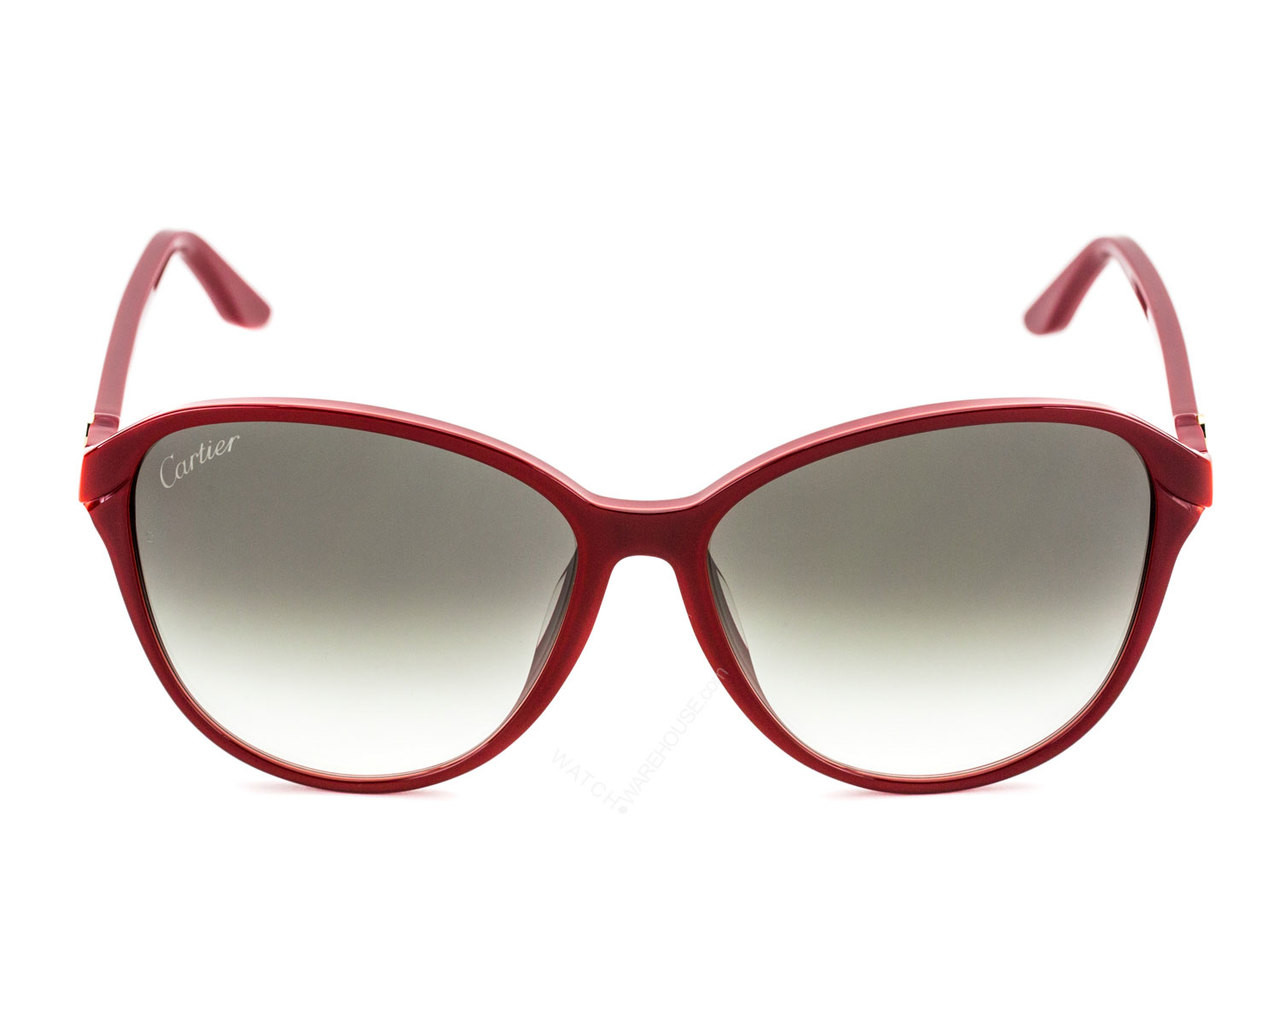 17b0c5279 ESW00104 Cartier Double C Décor Burgundy 60/15/140 Women's Sunglasses